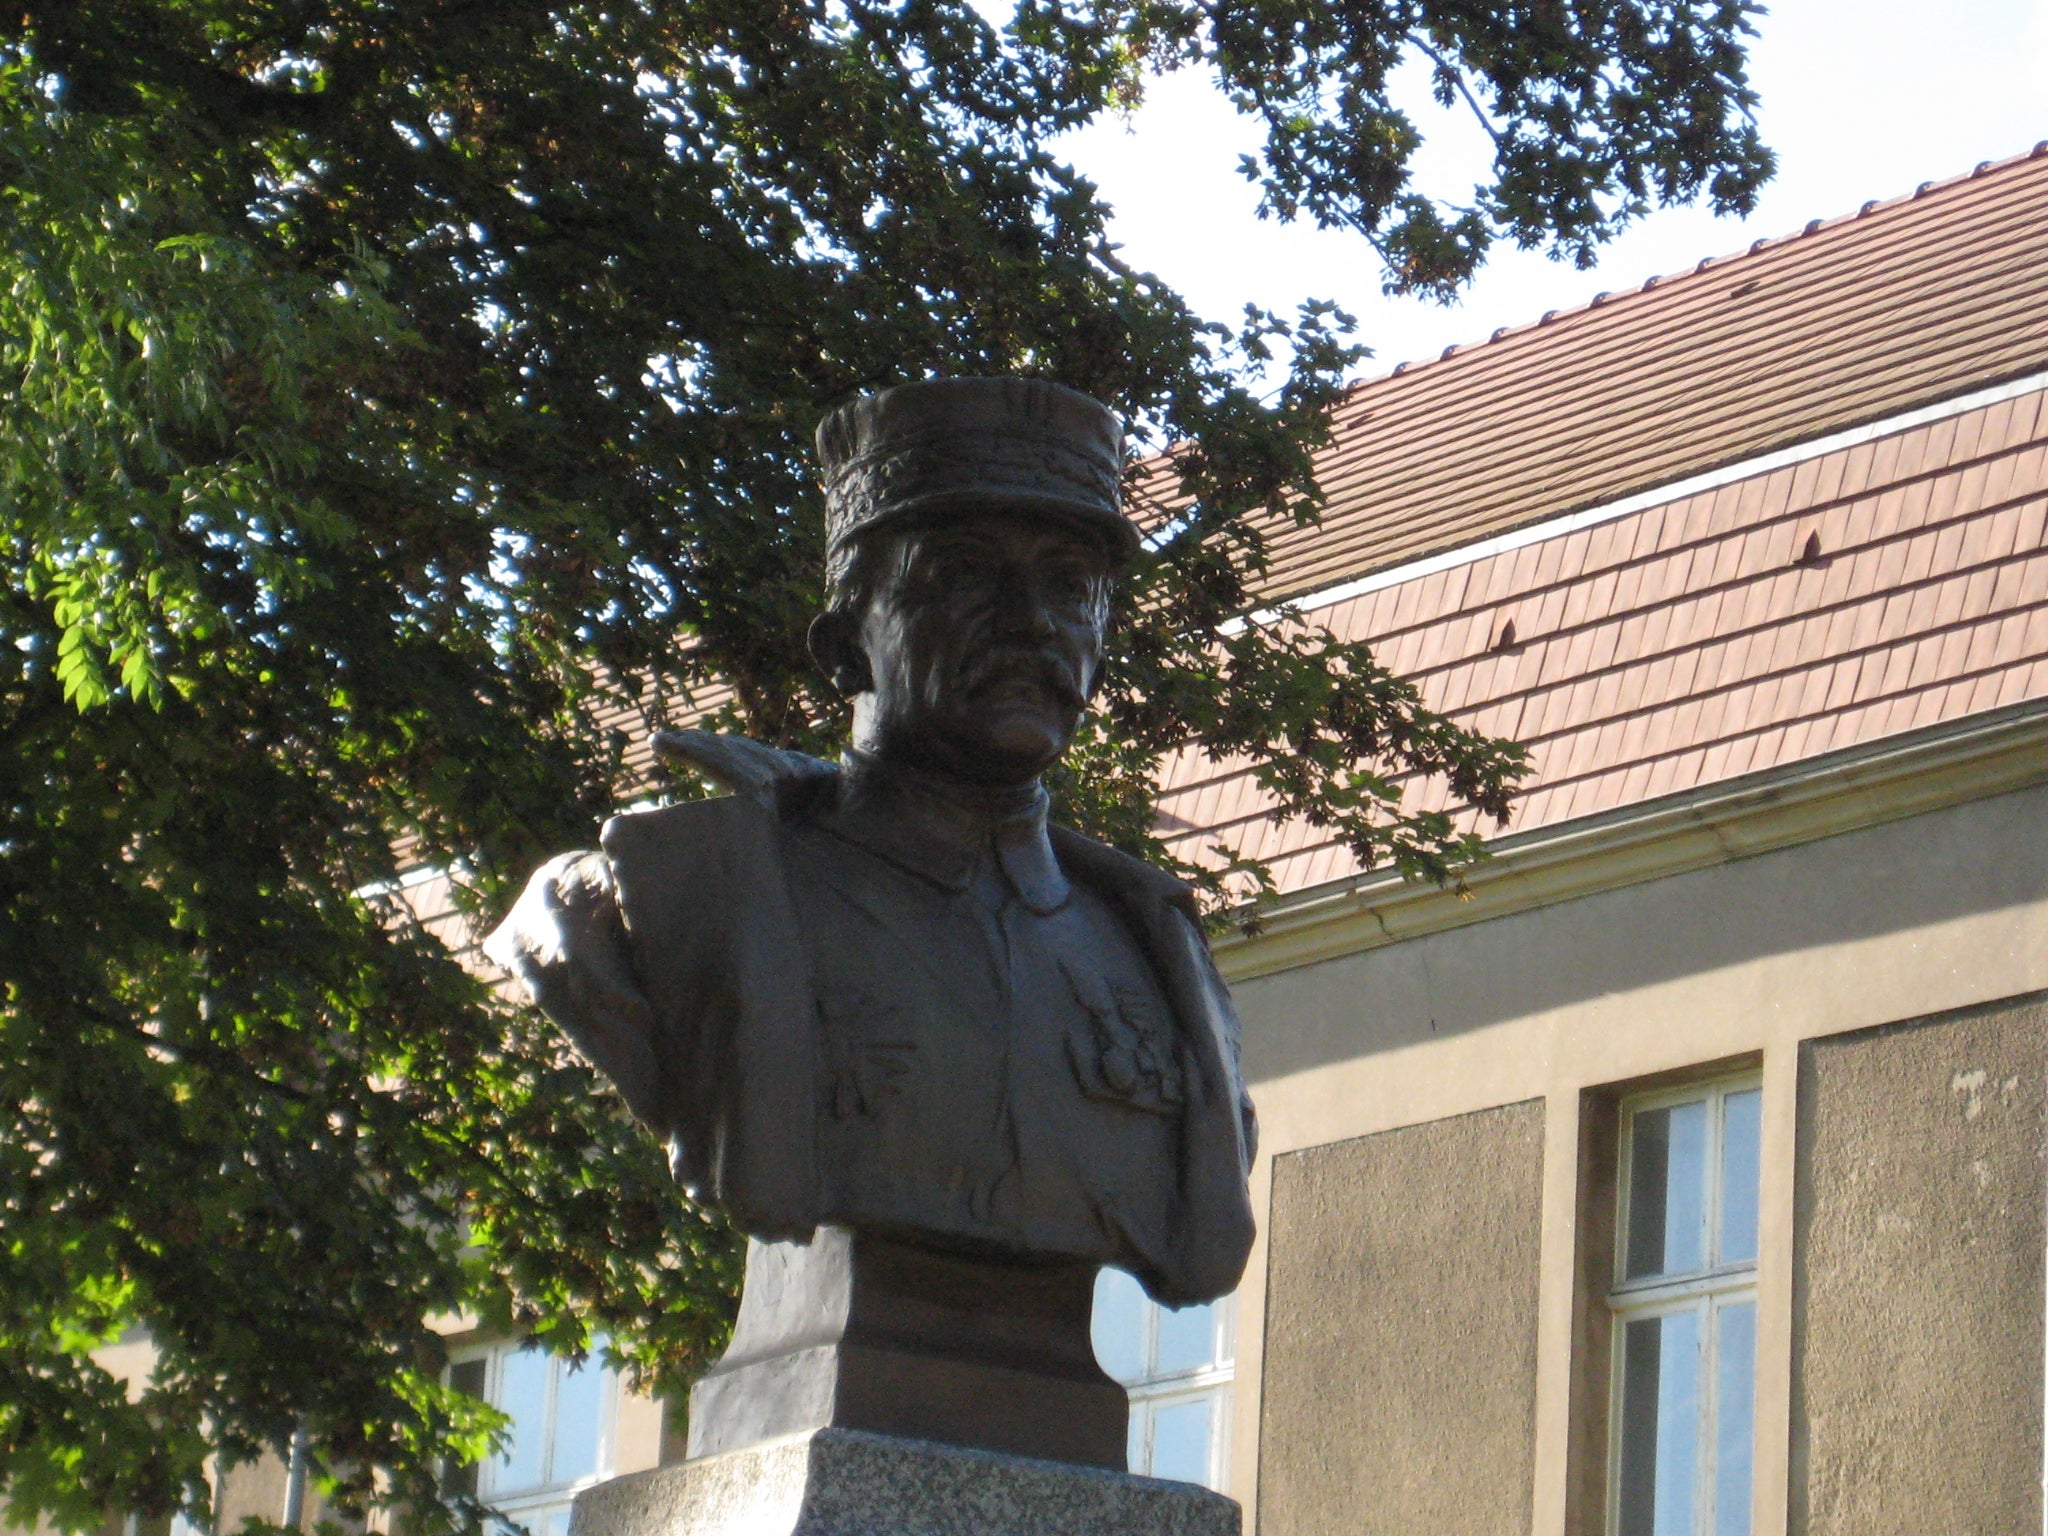 Statue of the general Maistre